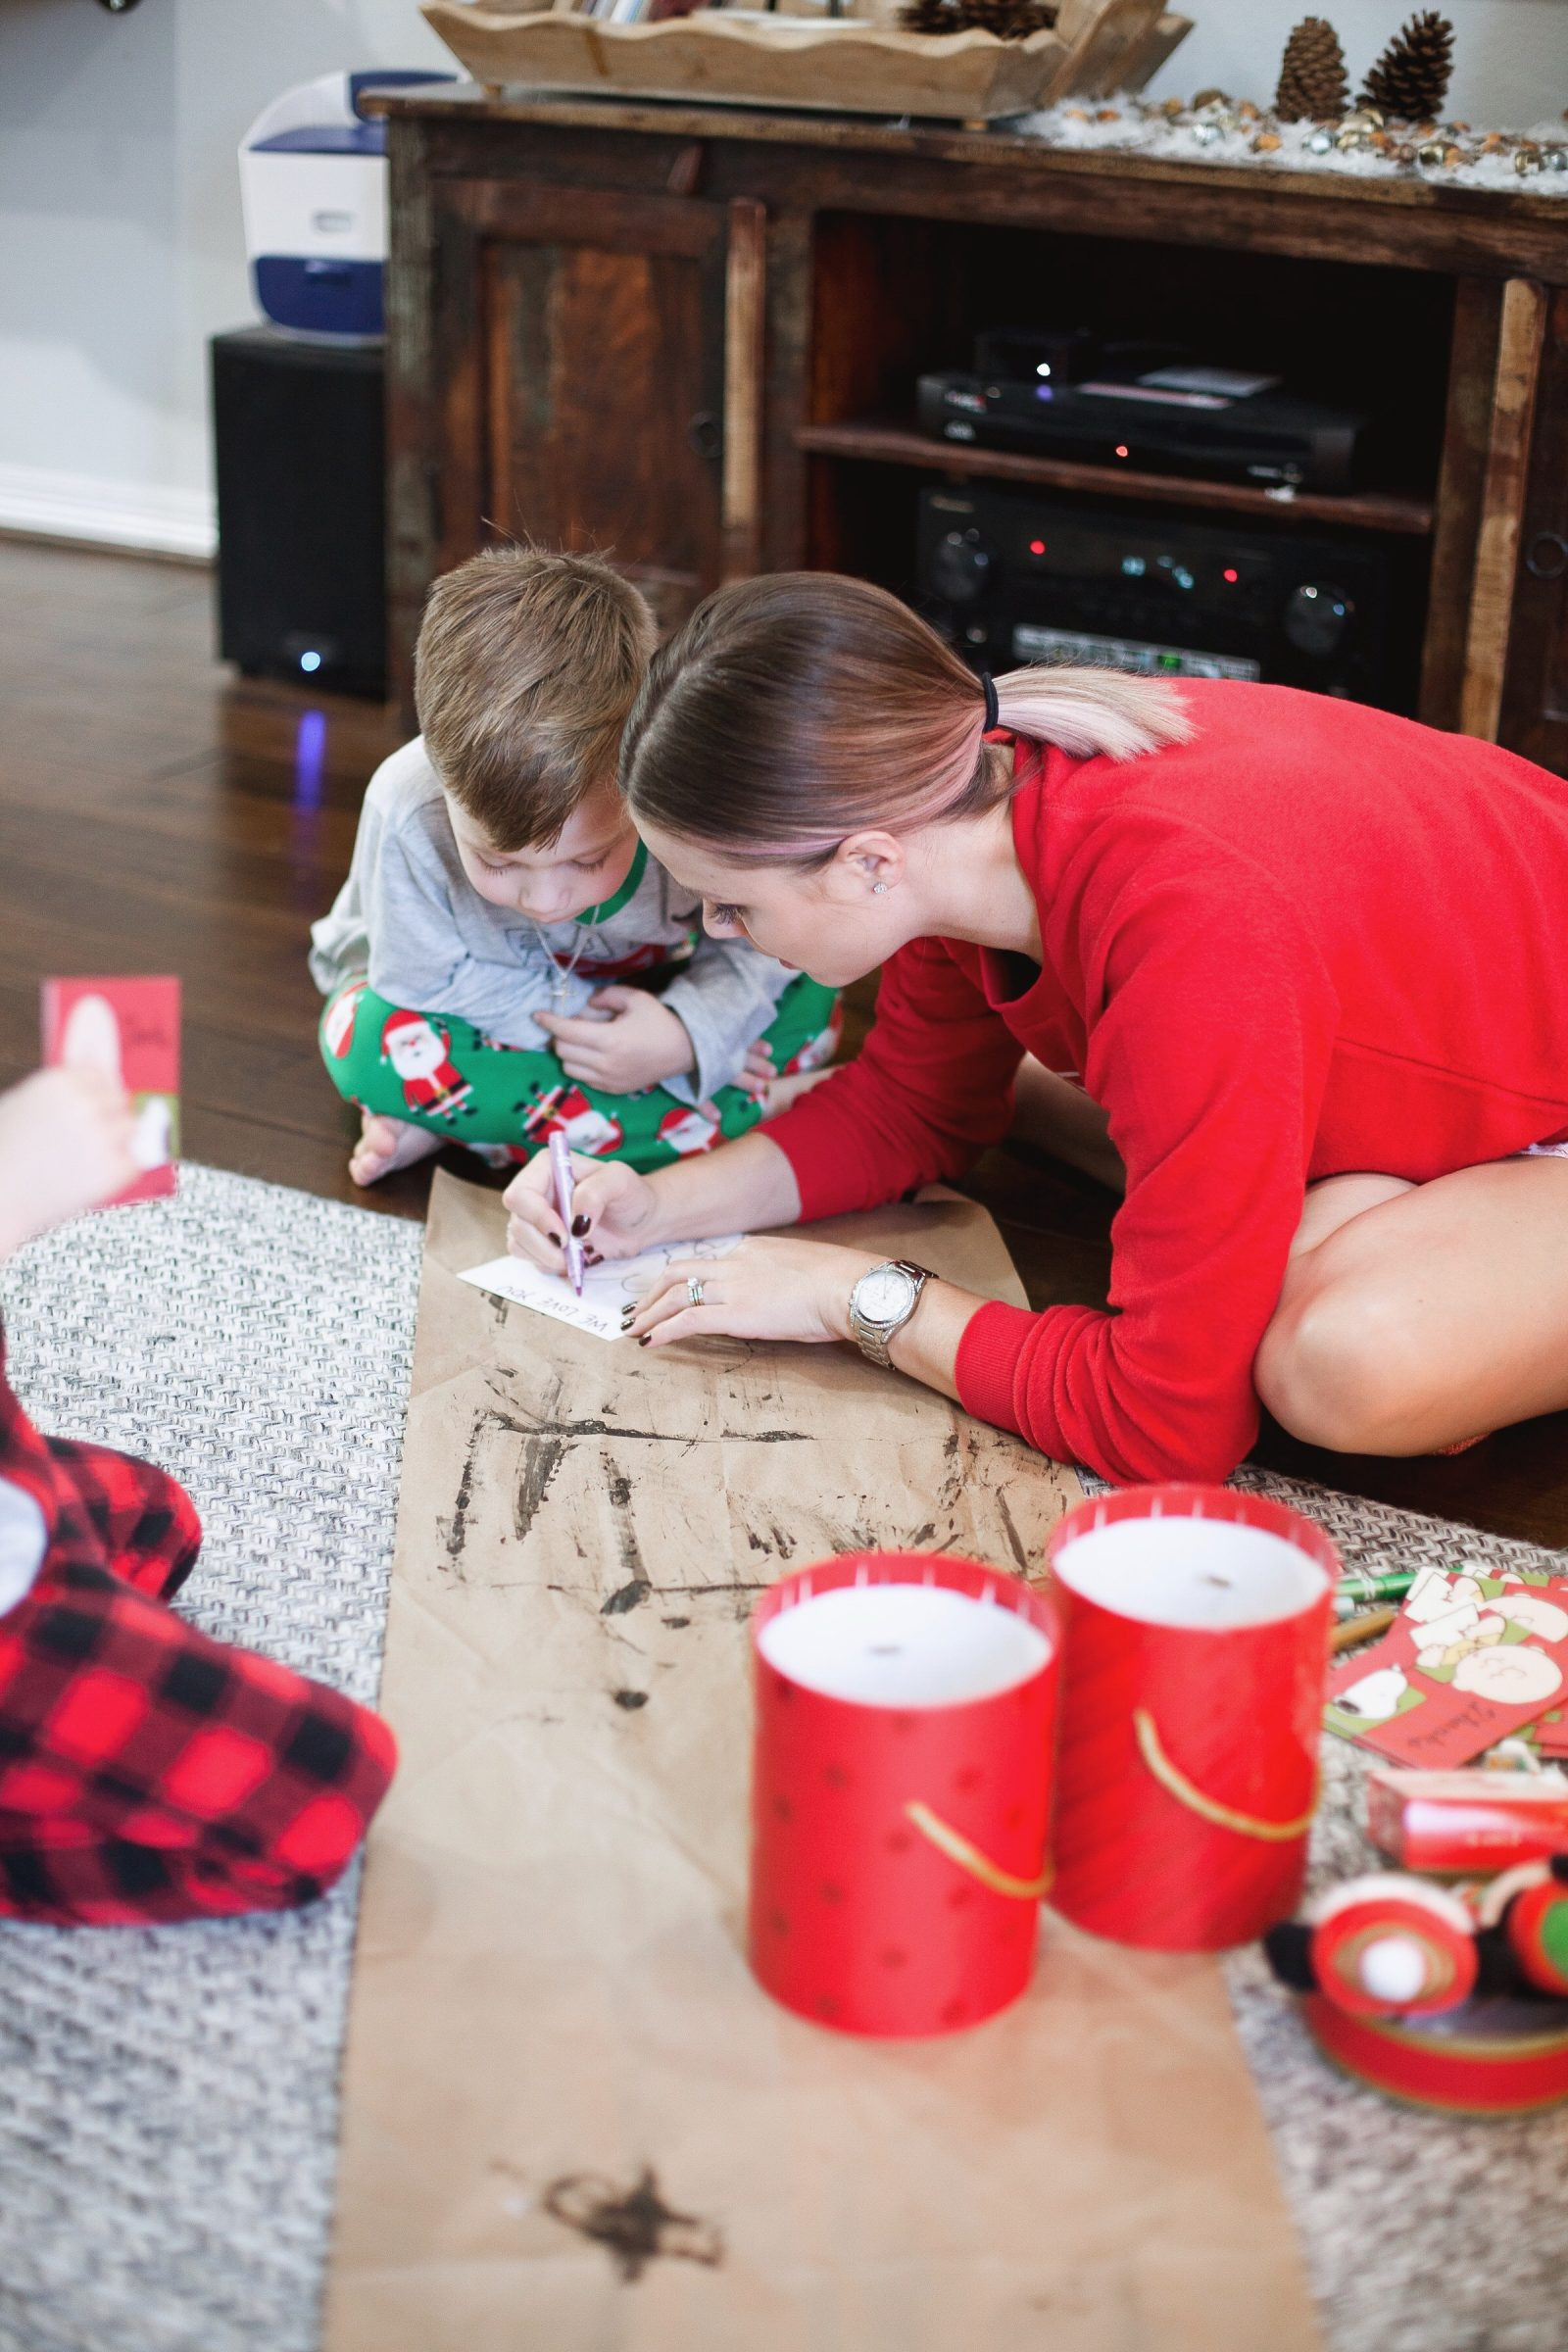 Houston Lifestyle Blogger Uptown with Elly Brown shares why it's important to teach our kids about Kindness this holiday season. Click here for more!